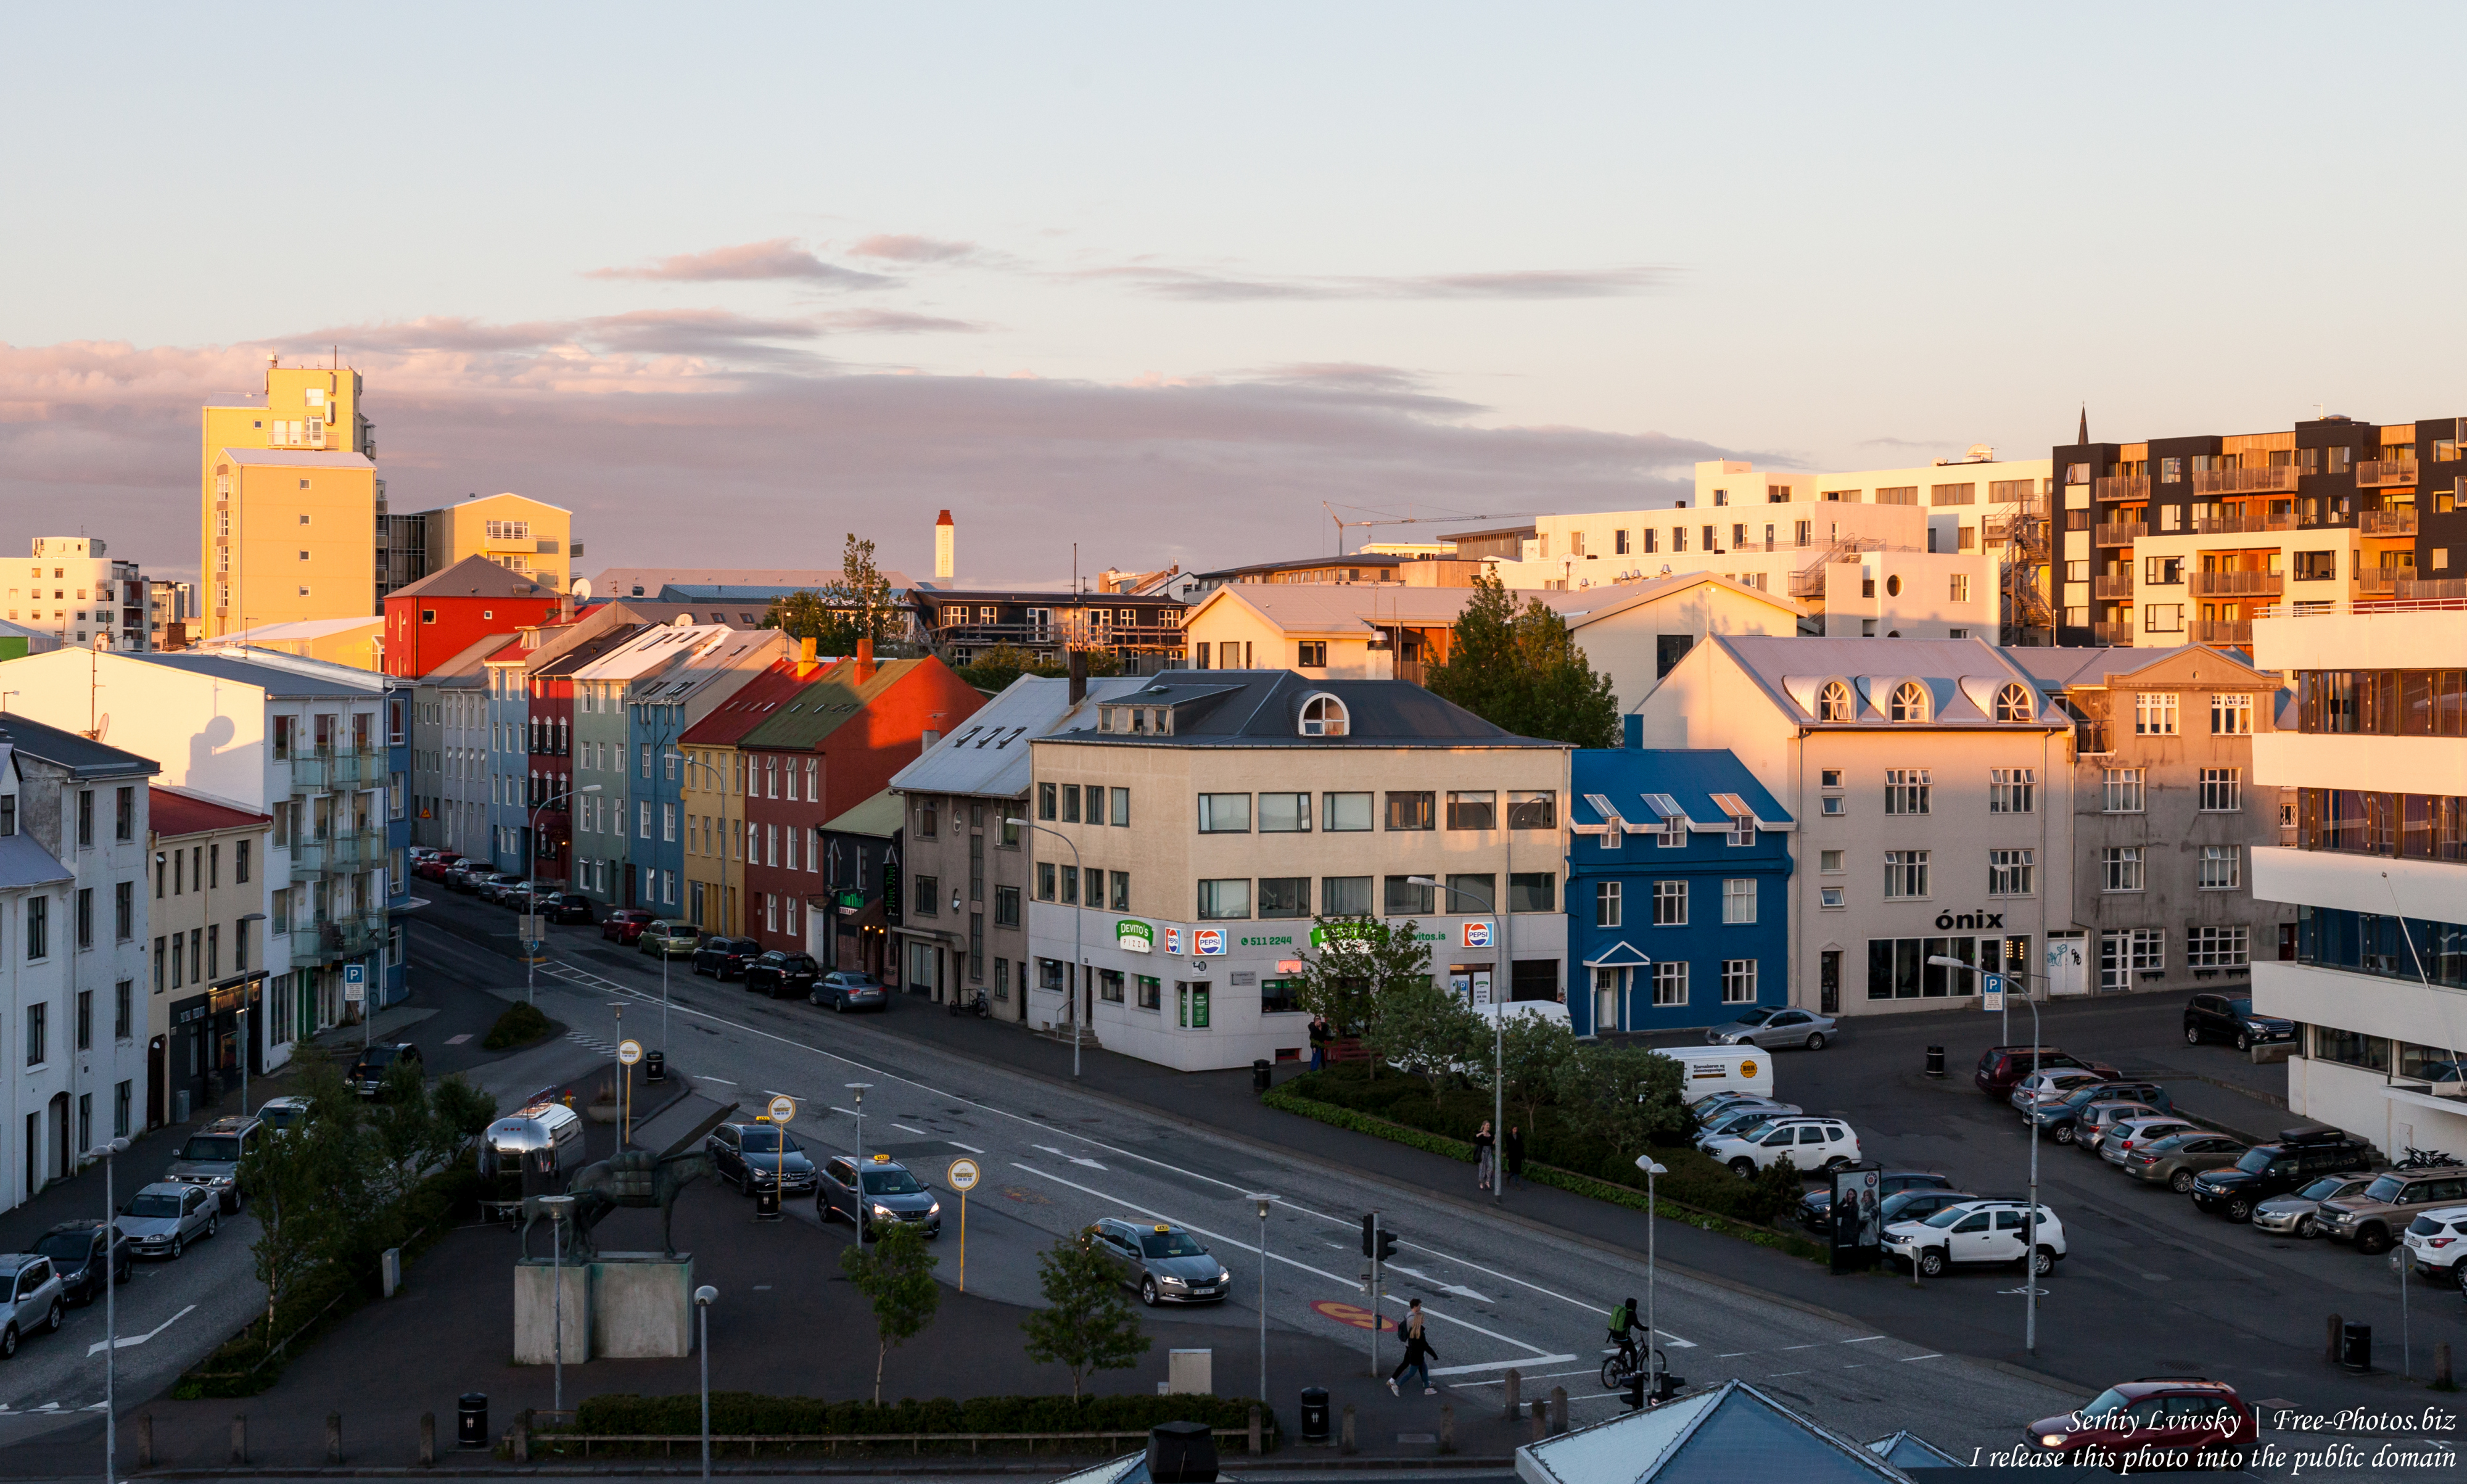 reykjavik_iceland_photographed_in_may_2019_by_serhiy_lvivsky_01